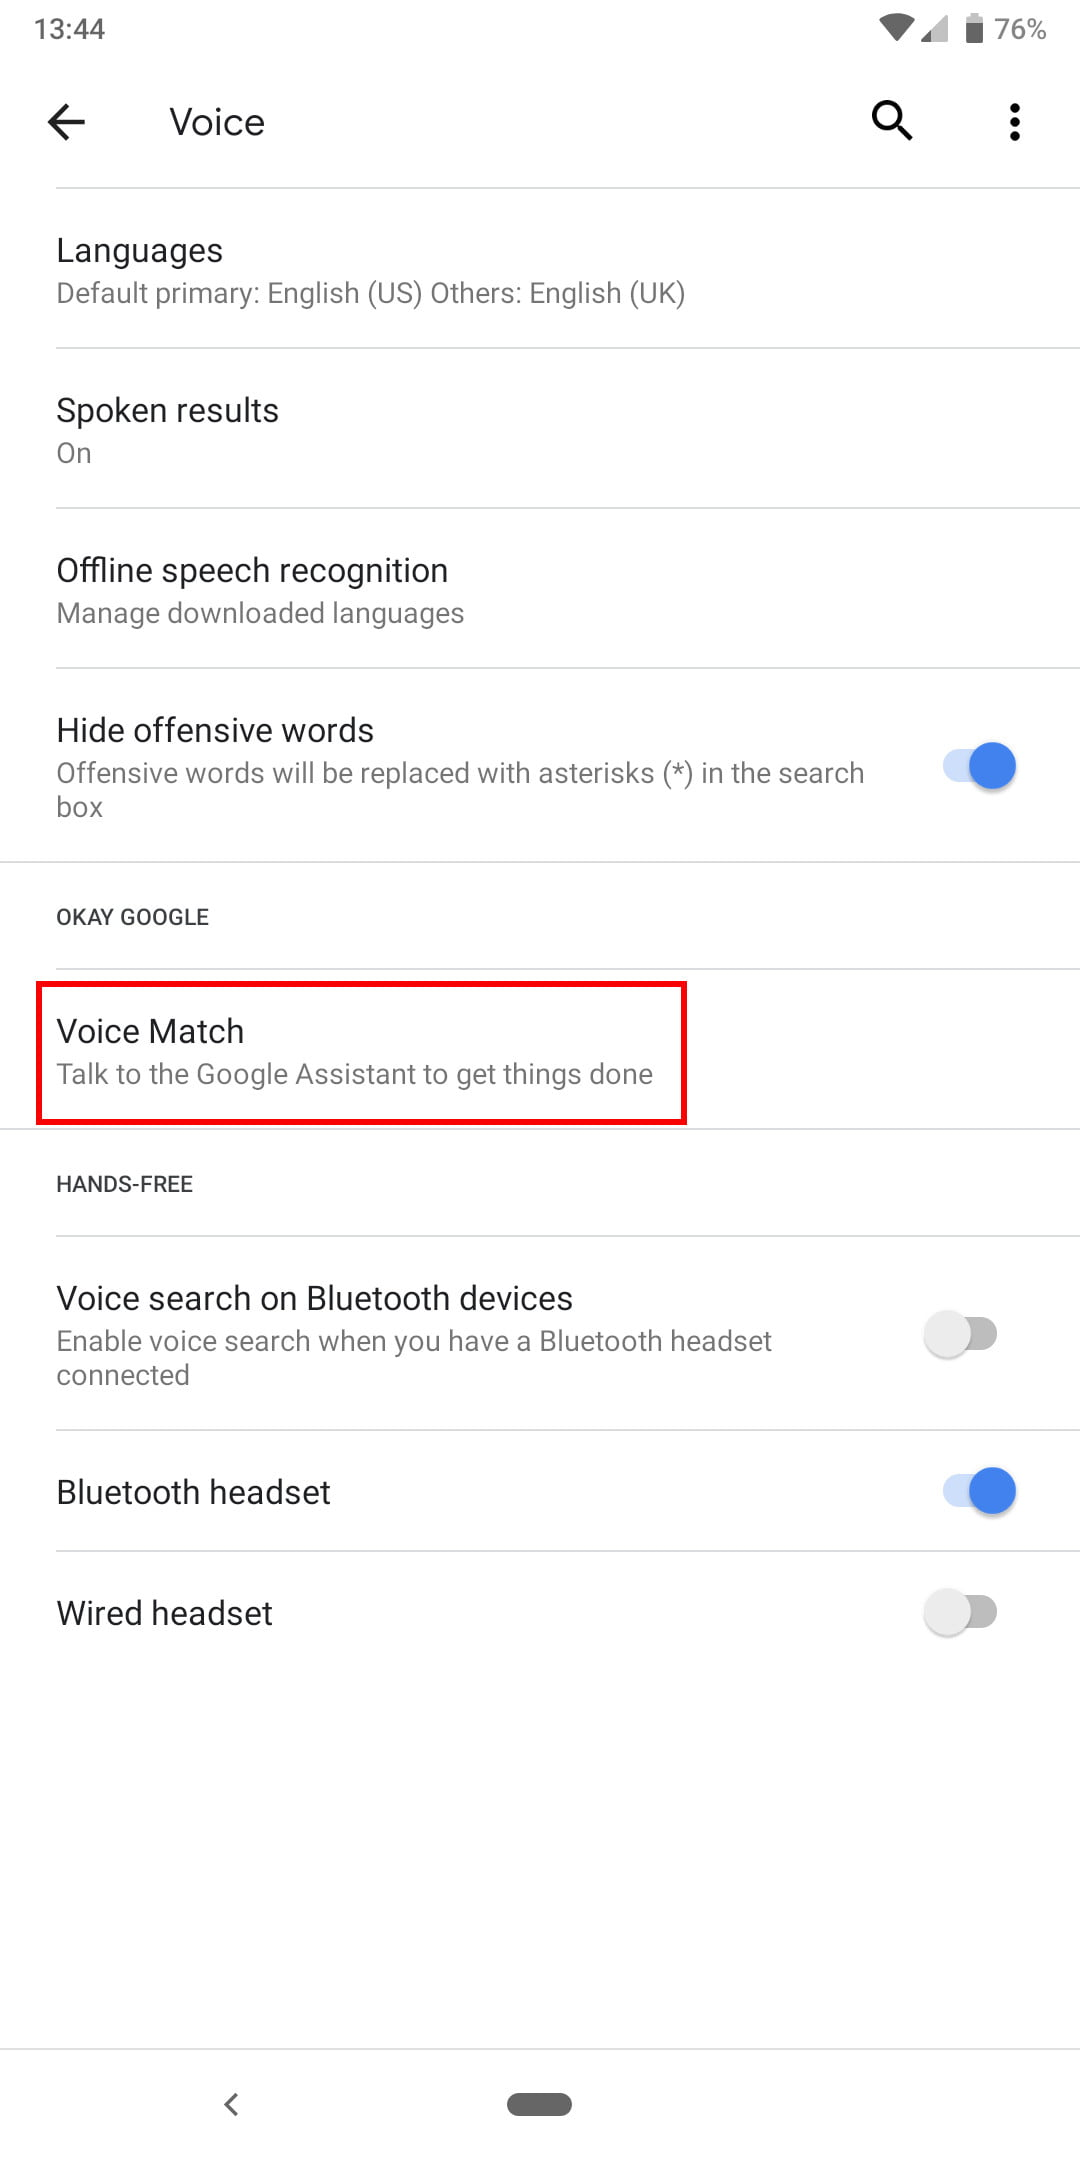 How to Use Google Assistant | All the 'OK, Google' Commands